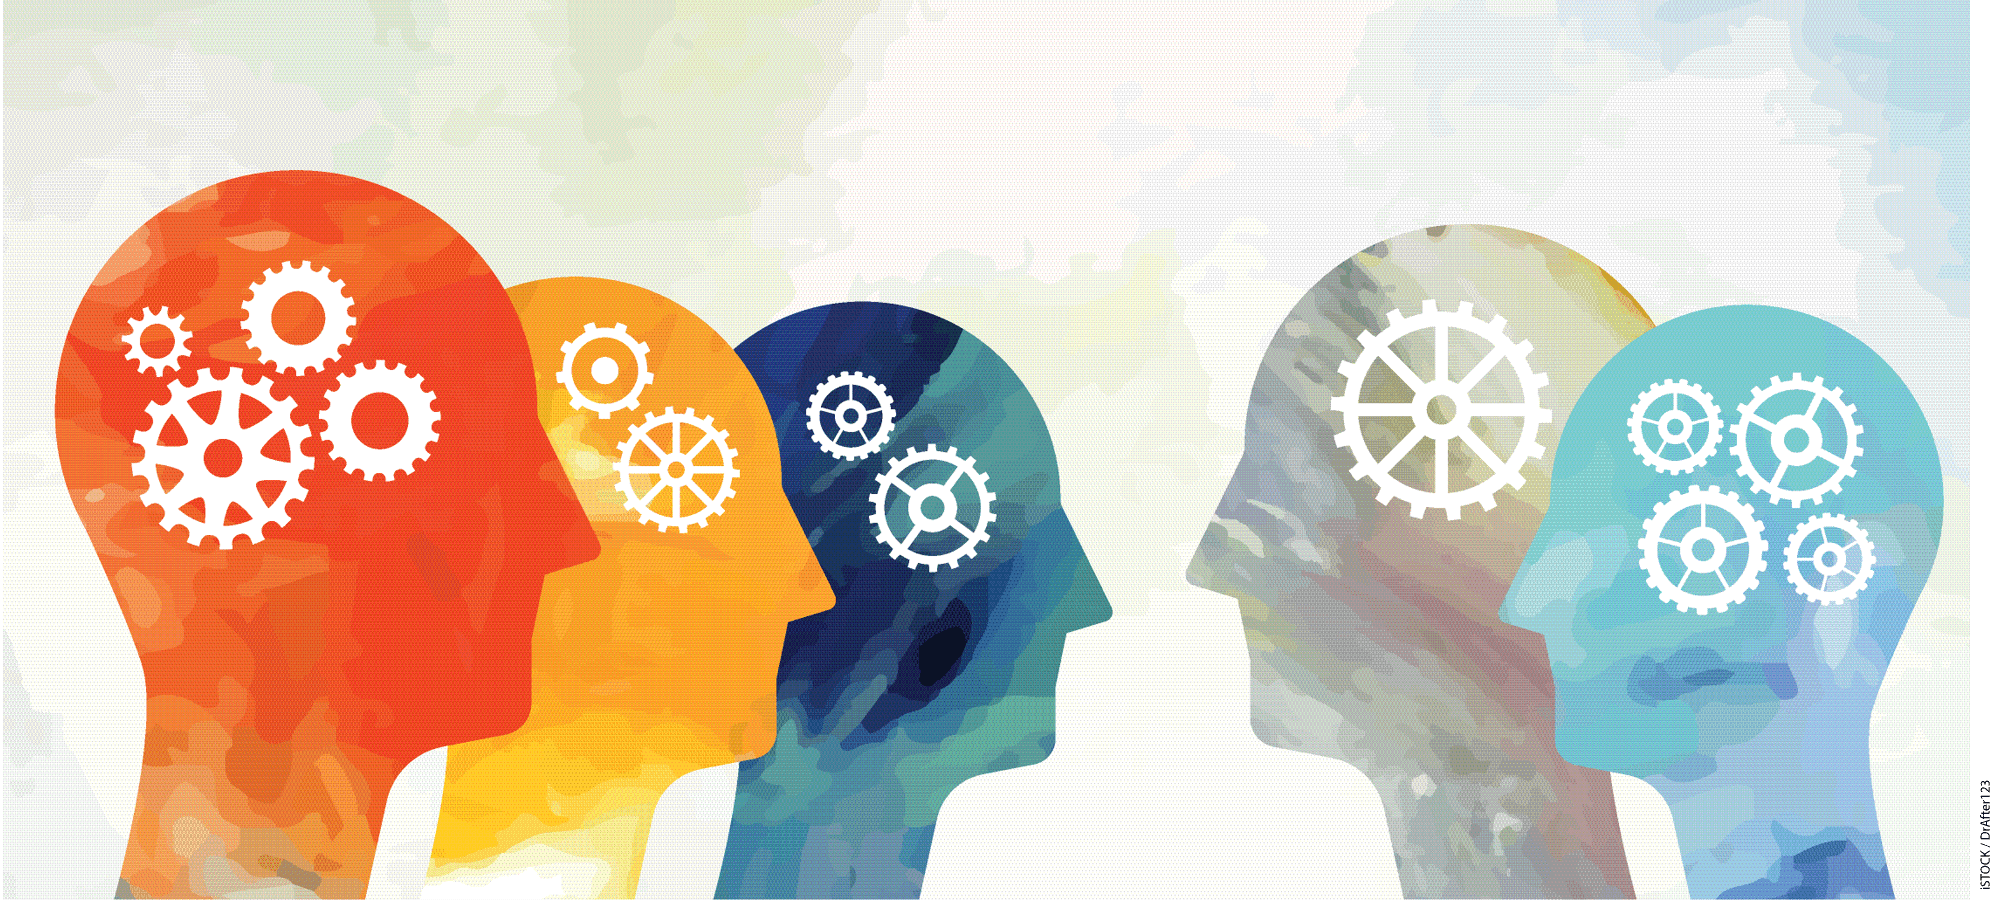 Vibrant heads with gears placed on light background.